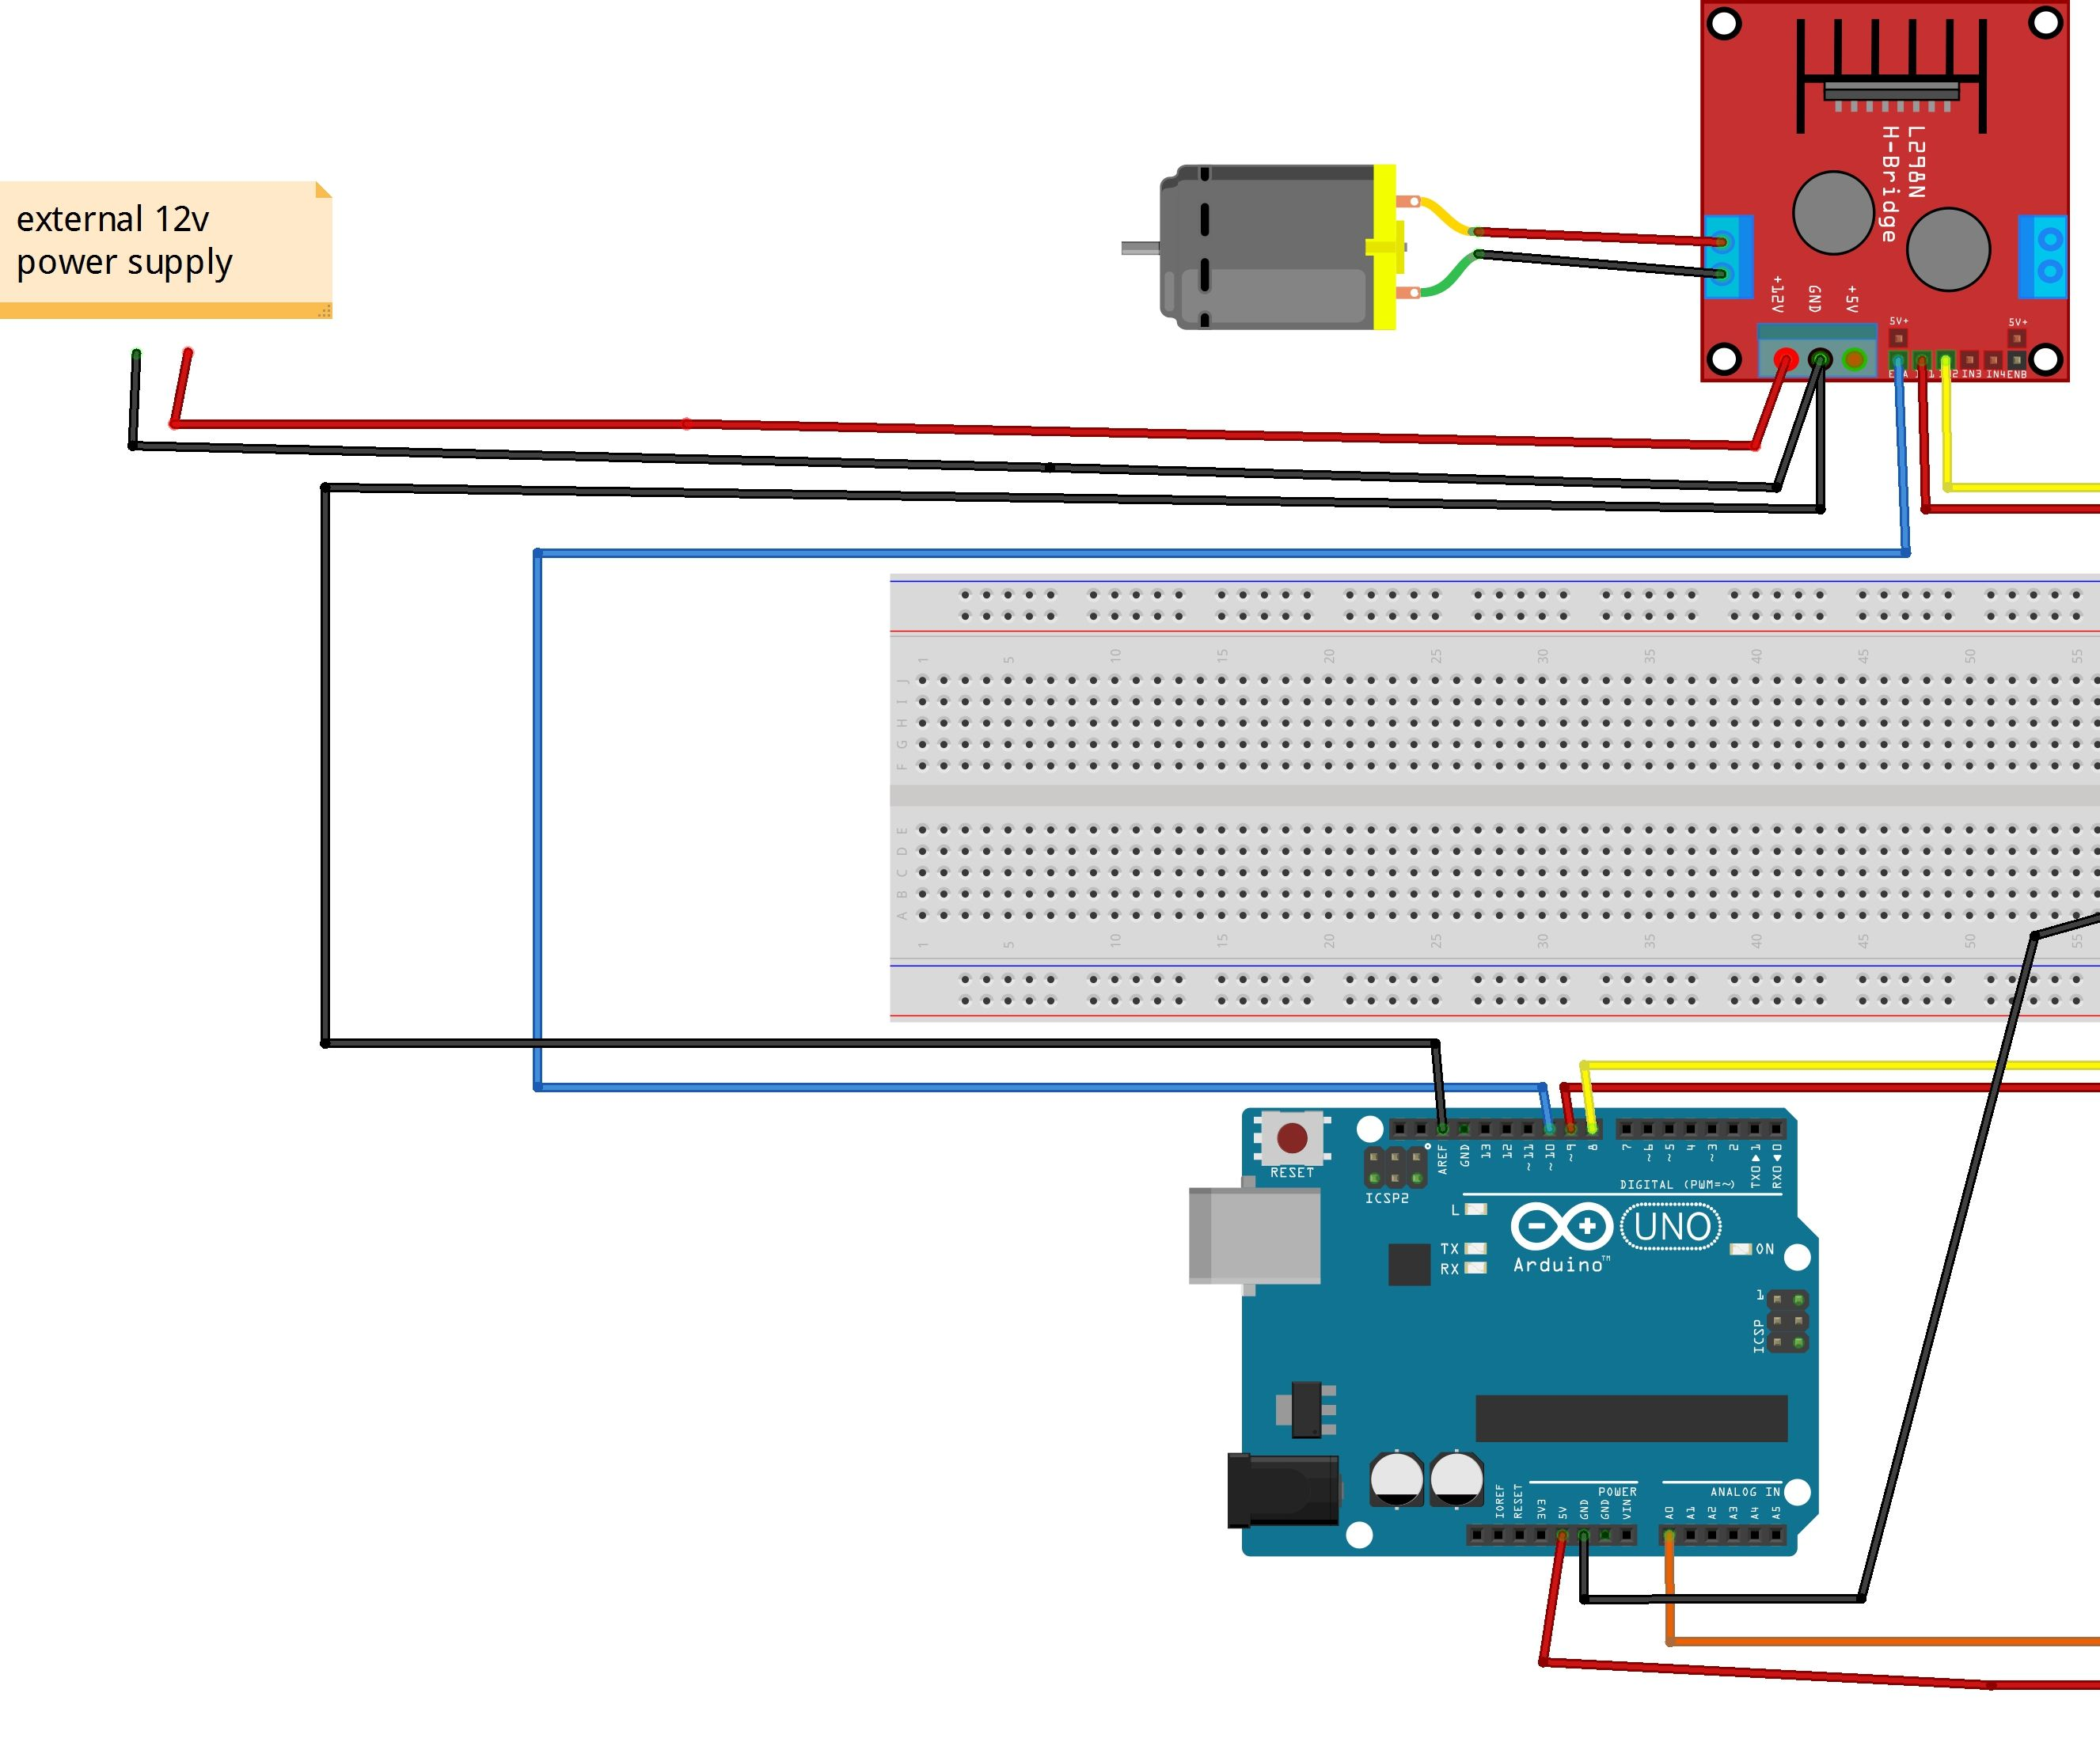 How to Control Speed of Motor Using Arduino and Potentiometer